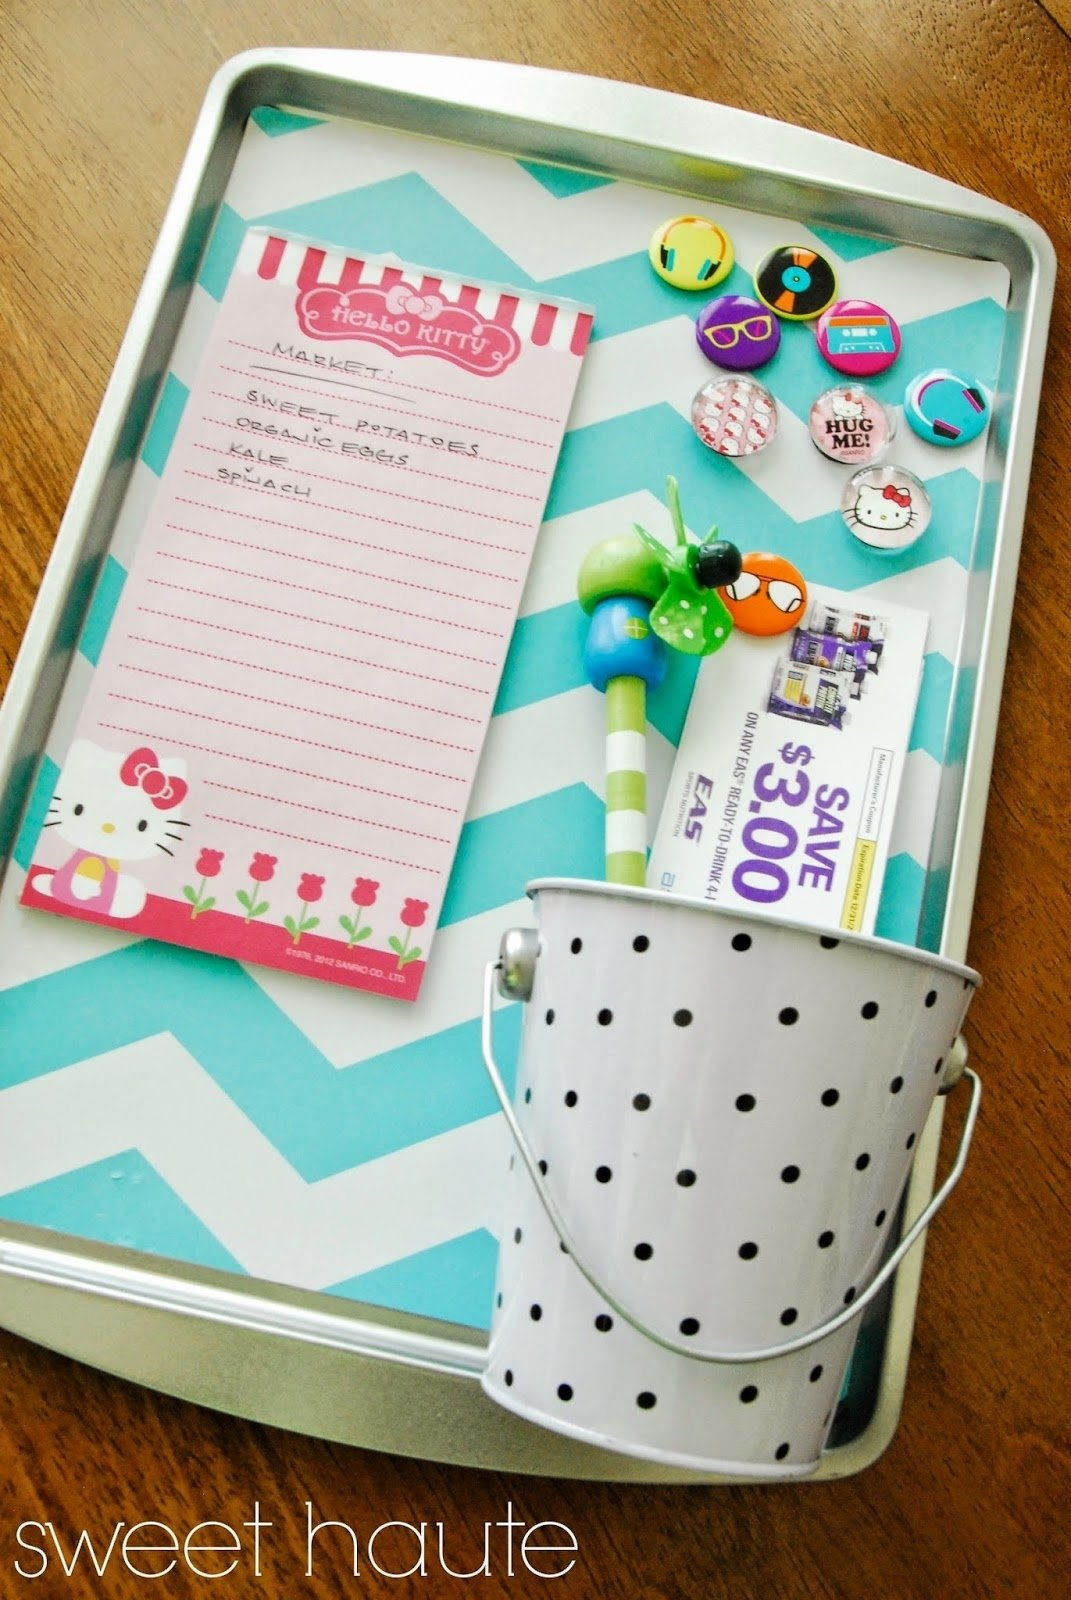 10 Most Recommended Cute Gift Ideas For Friends Diy Birthday Gifts Unixcode